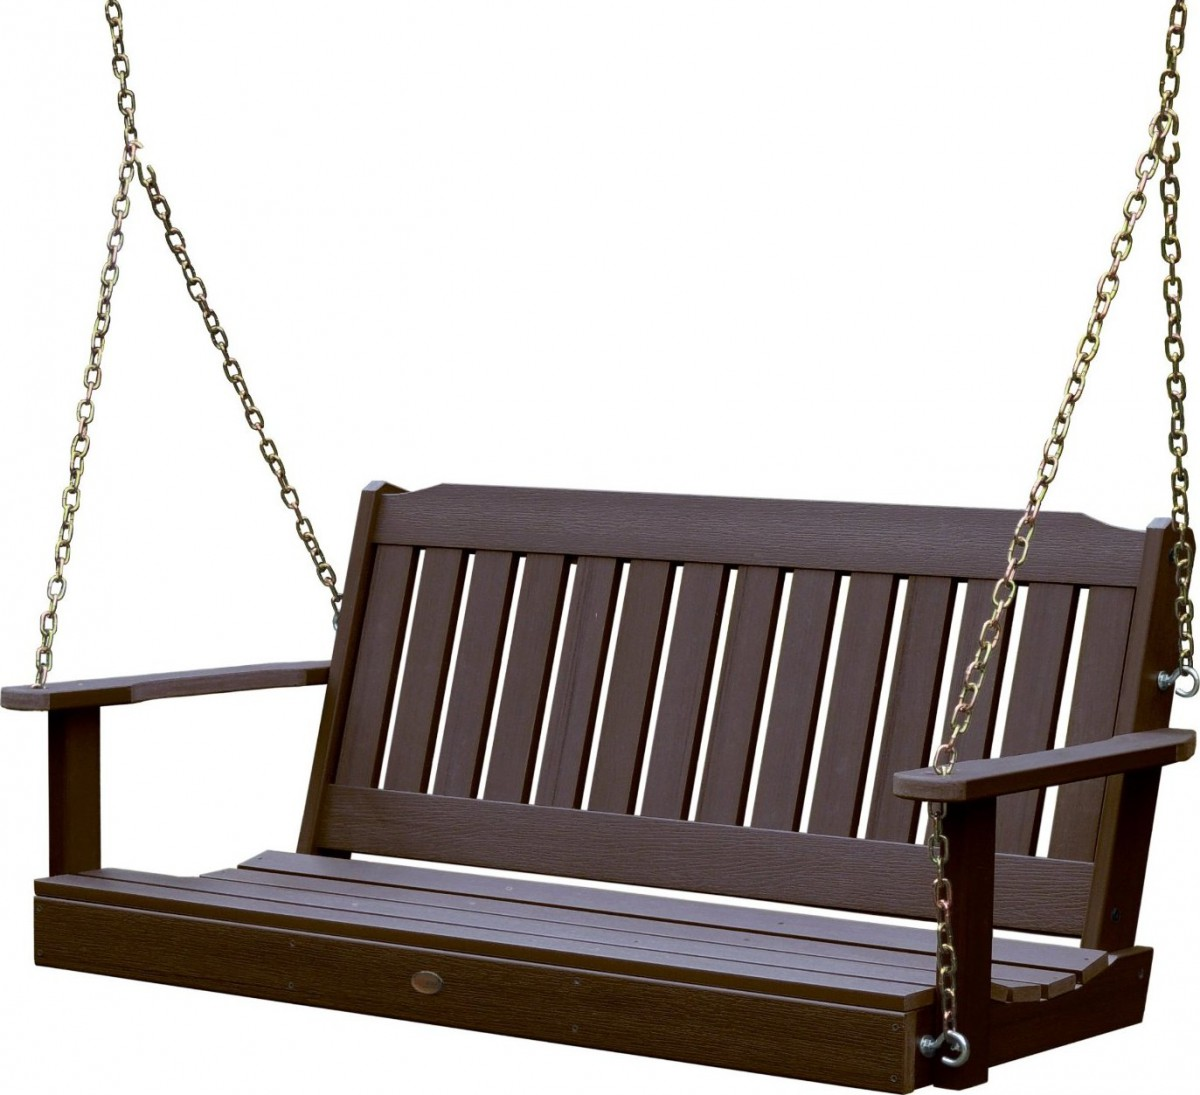 hanging chair amazon side chairs highwood outdoor synthetic / plastic wood porch swing set